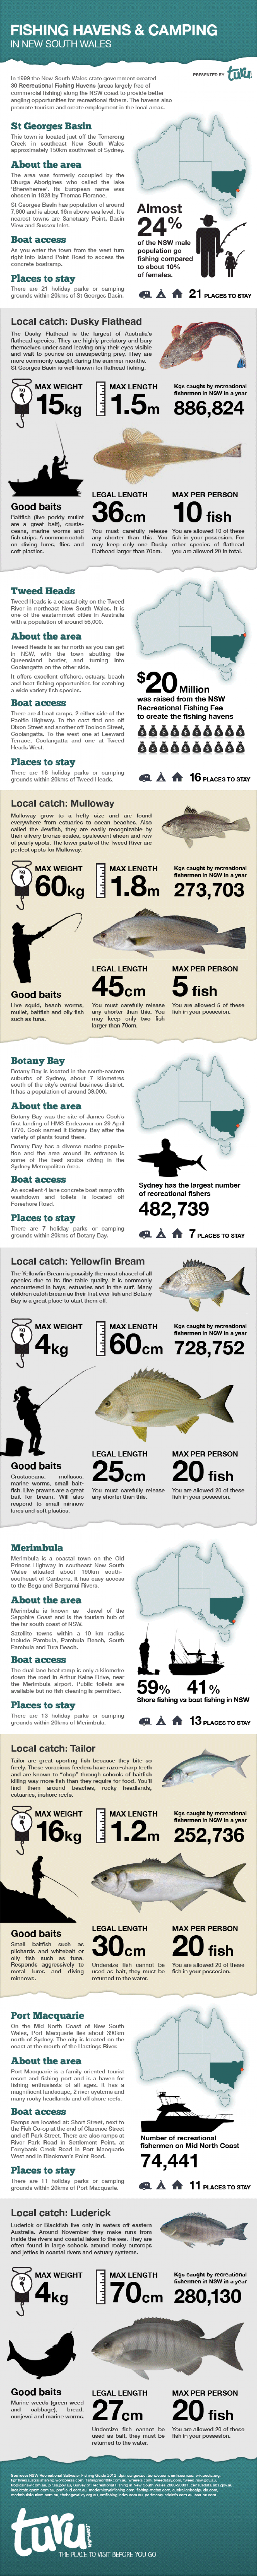 Recreational Fishing Guide Infographic